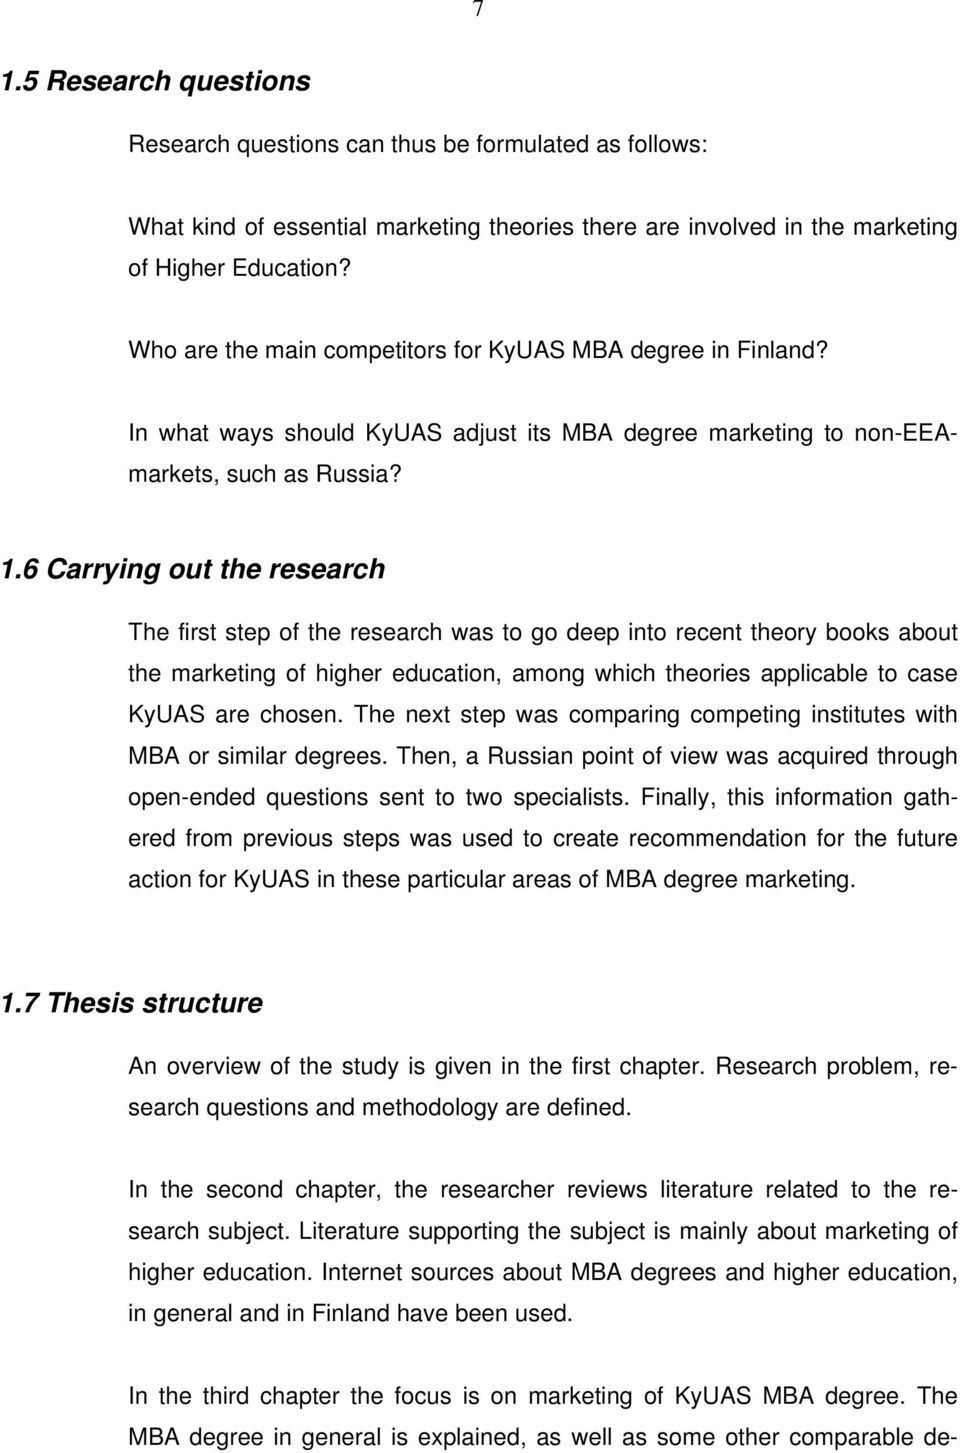 6 Carrying out the research The first step of the research was to go deep into recent theory books about the marketing of higher education, among which theories applicable to case KyUAS are chosen.